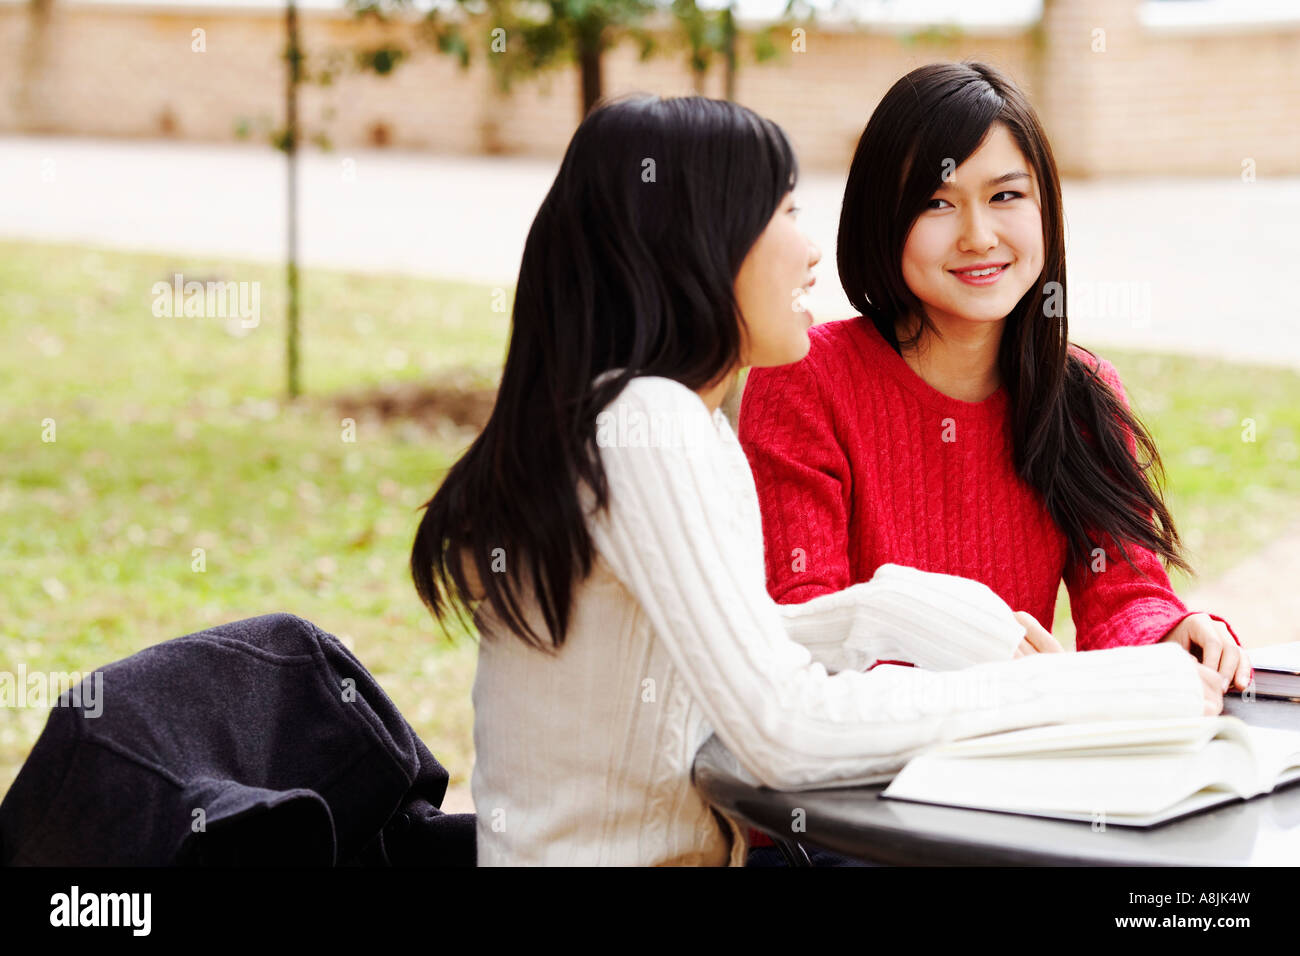 Two young women sitting in a college campus and talking to each other - Stock Image